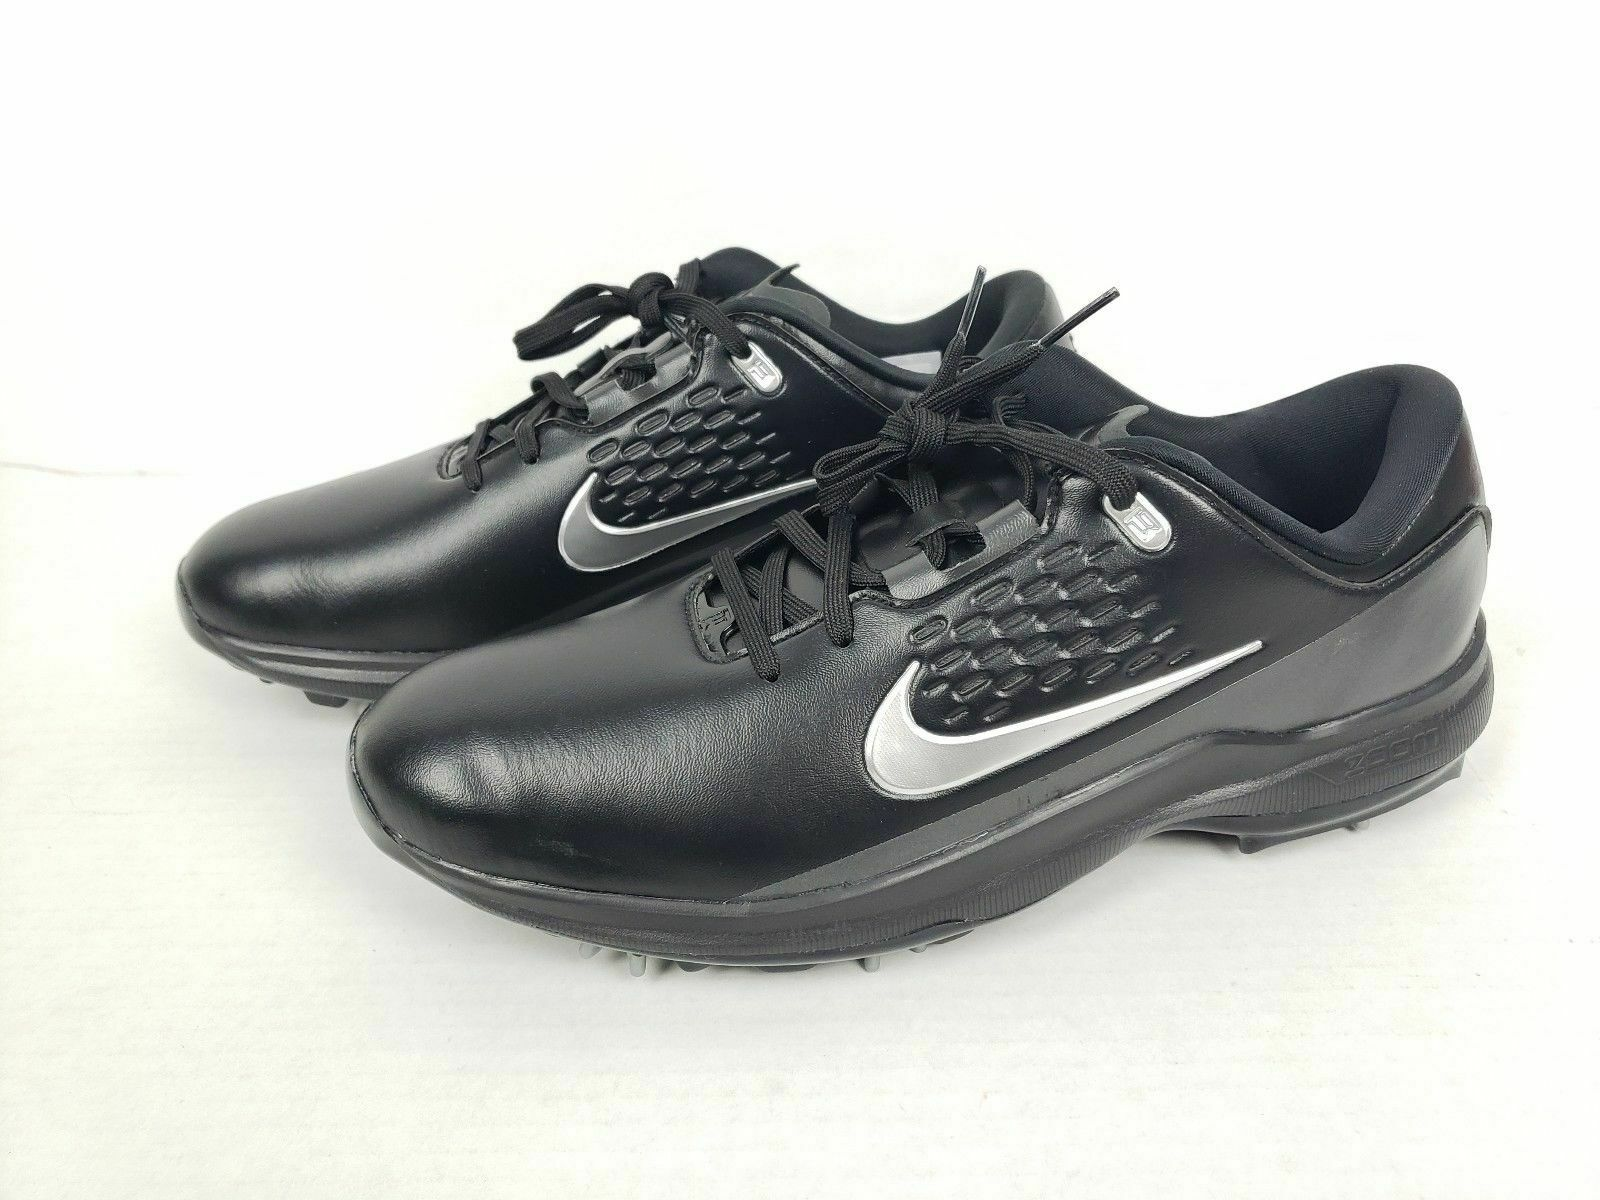 a12f6cff4 Baseball   Softball Mens NIKE Lunar Trout 2 White Pewter Flywire Baseball  Metal Spikes Cleats 807127